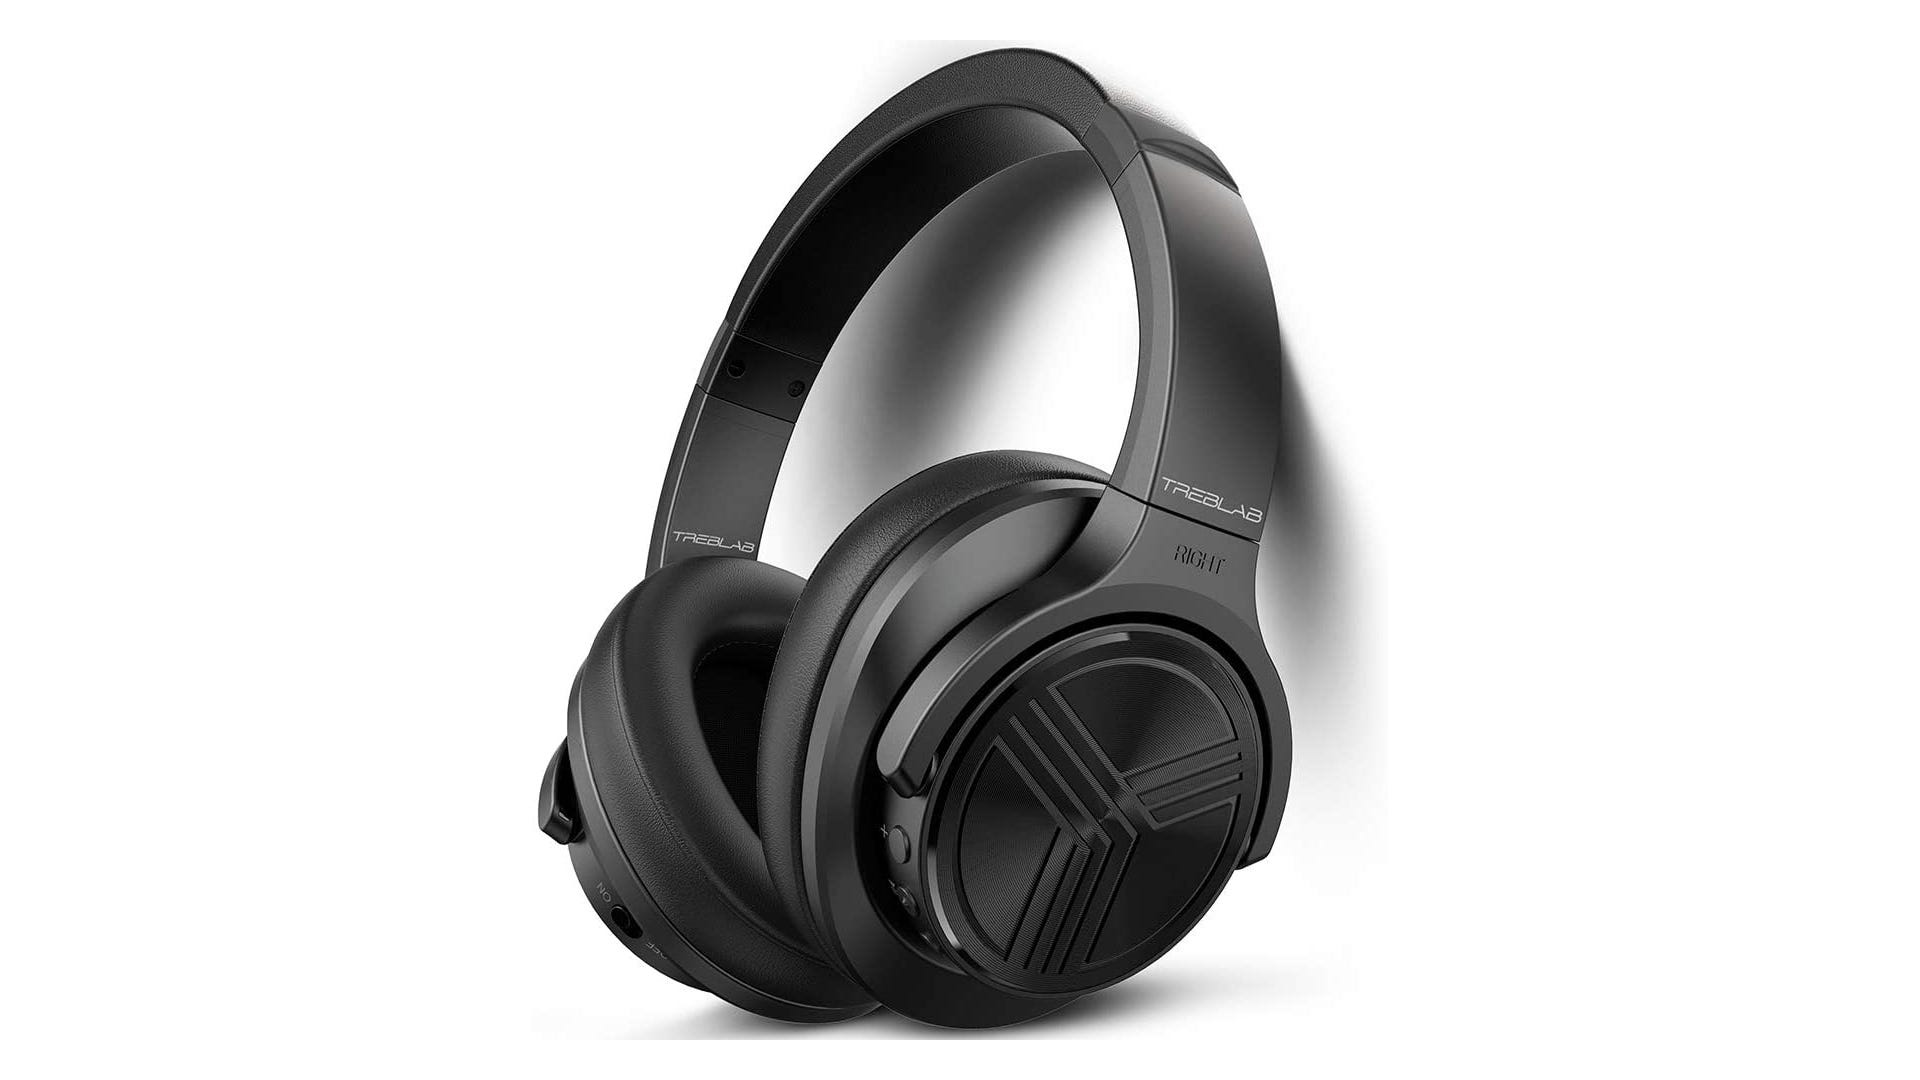 Black noise-canceling over-ear Bluetooth headphones with comfortable sporty design